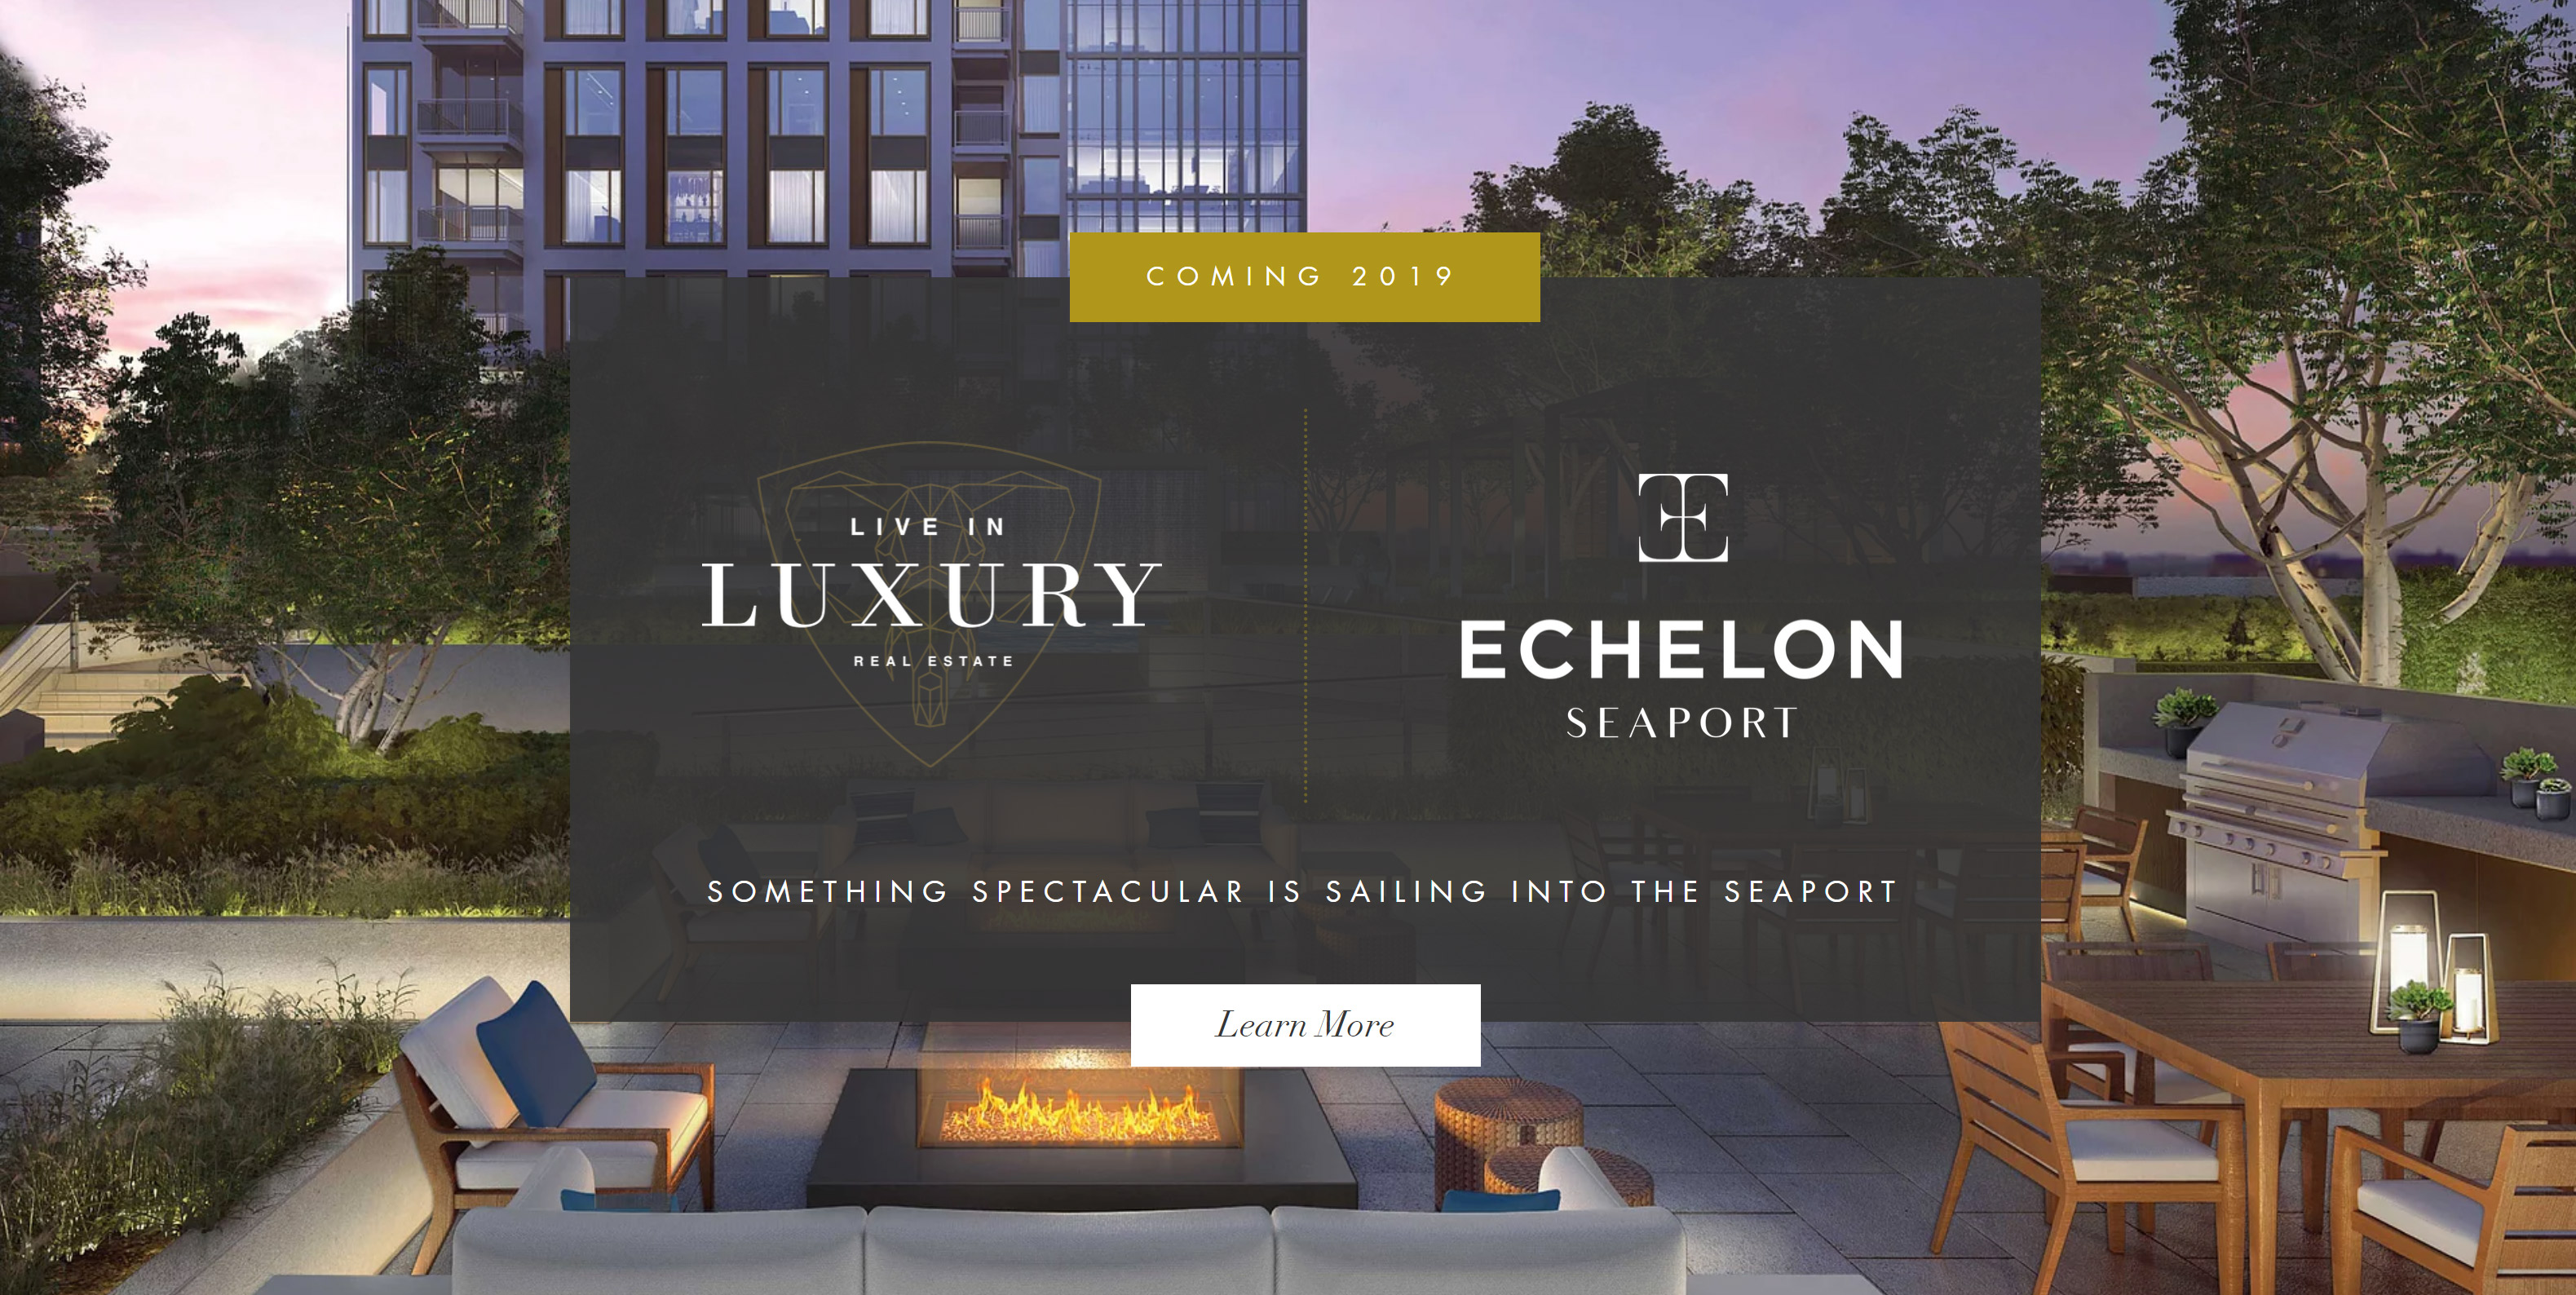 Sarah-Cas-Graphic-Design-Website-Design-Live-In-Luxury-Real-Estate-Echelon-Seaport-Boston-7